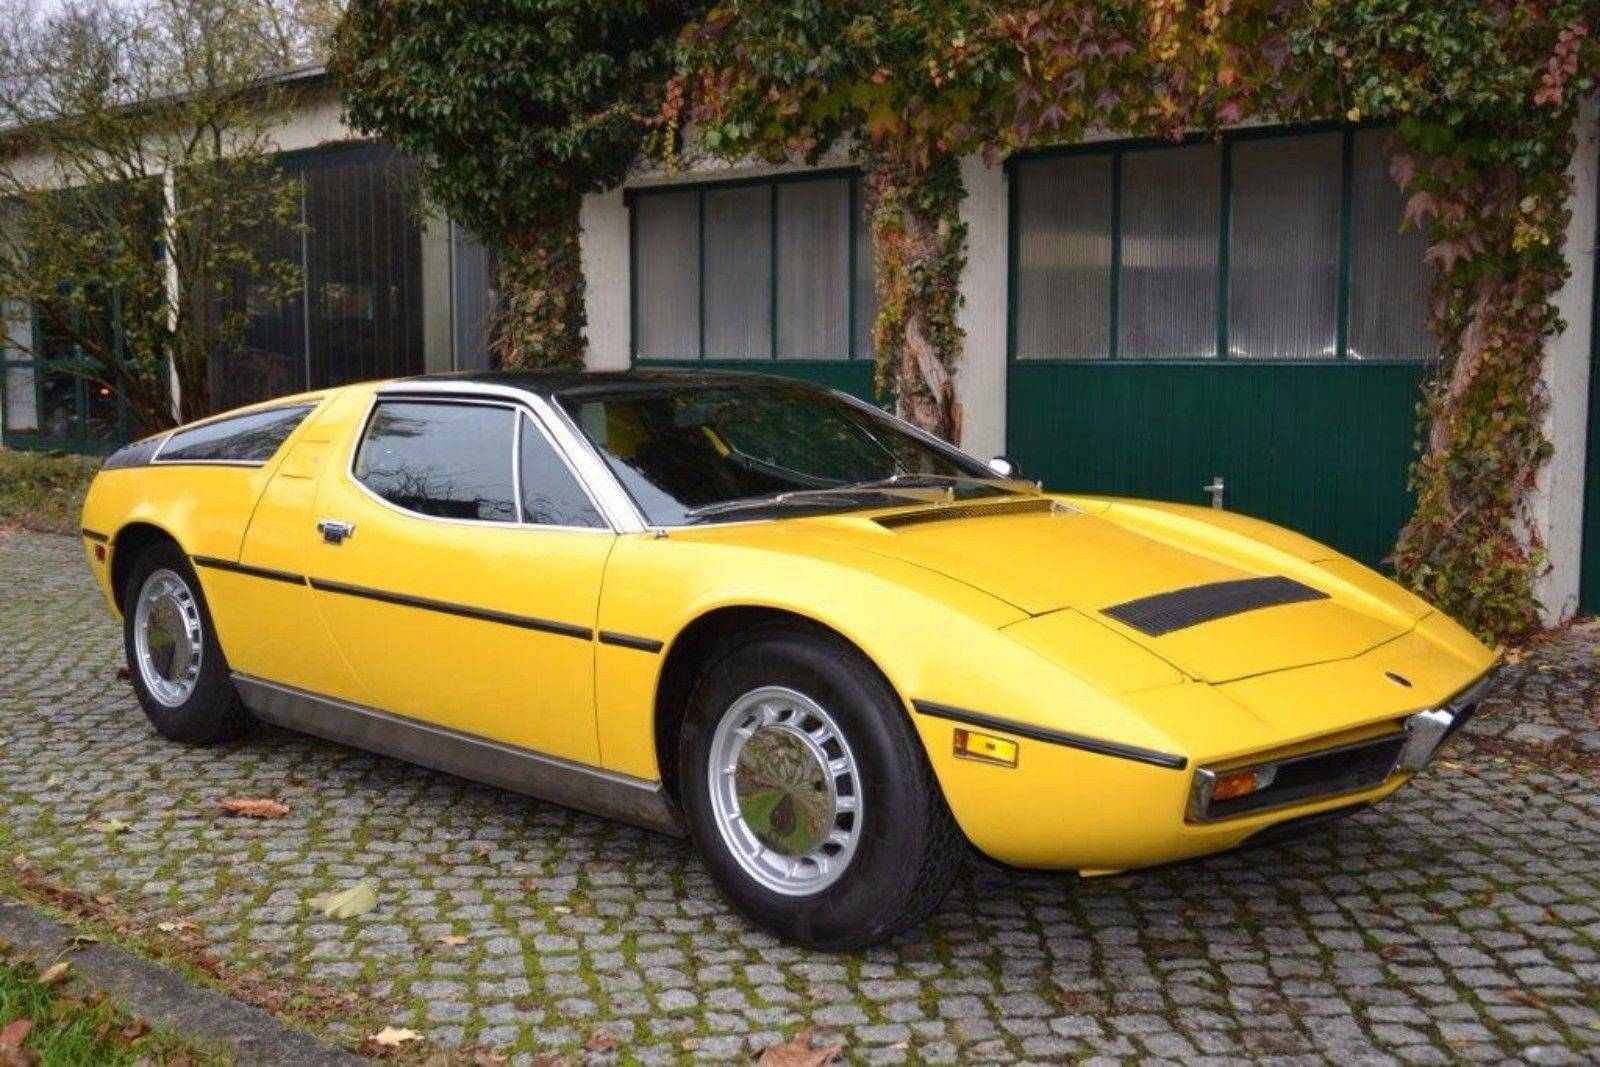 For Sale: Maserati Bora 4900 (1975) offered for AUD 391,369